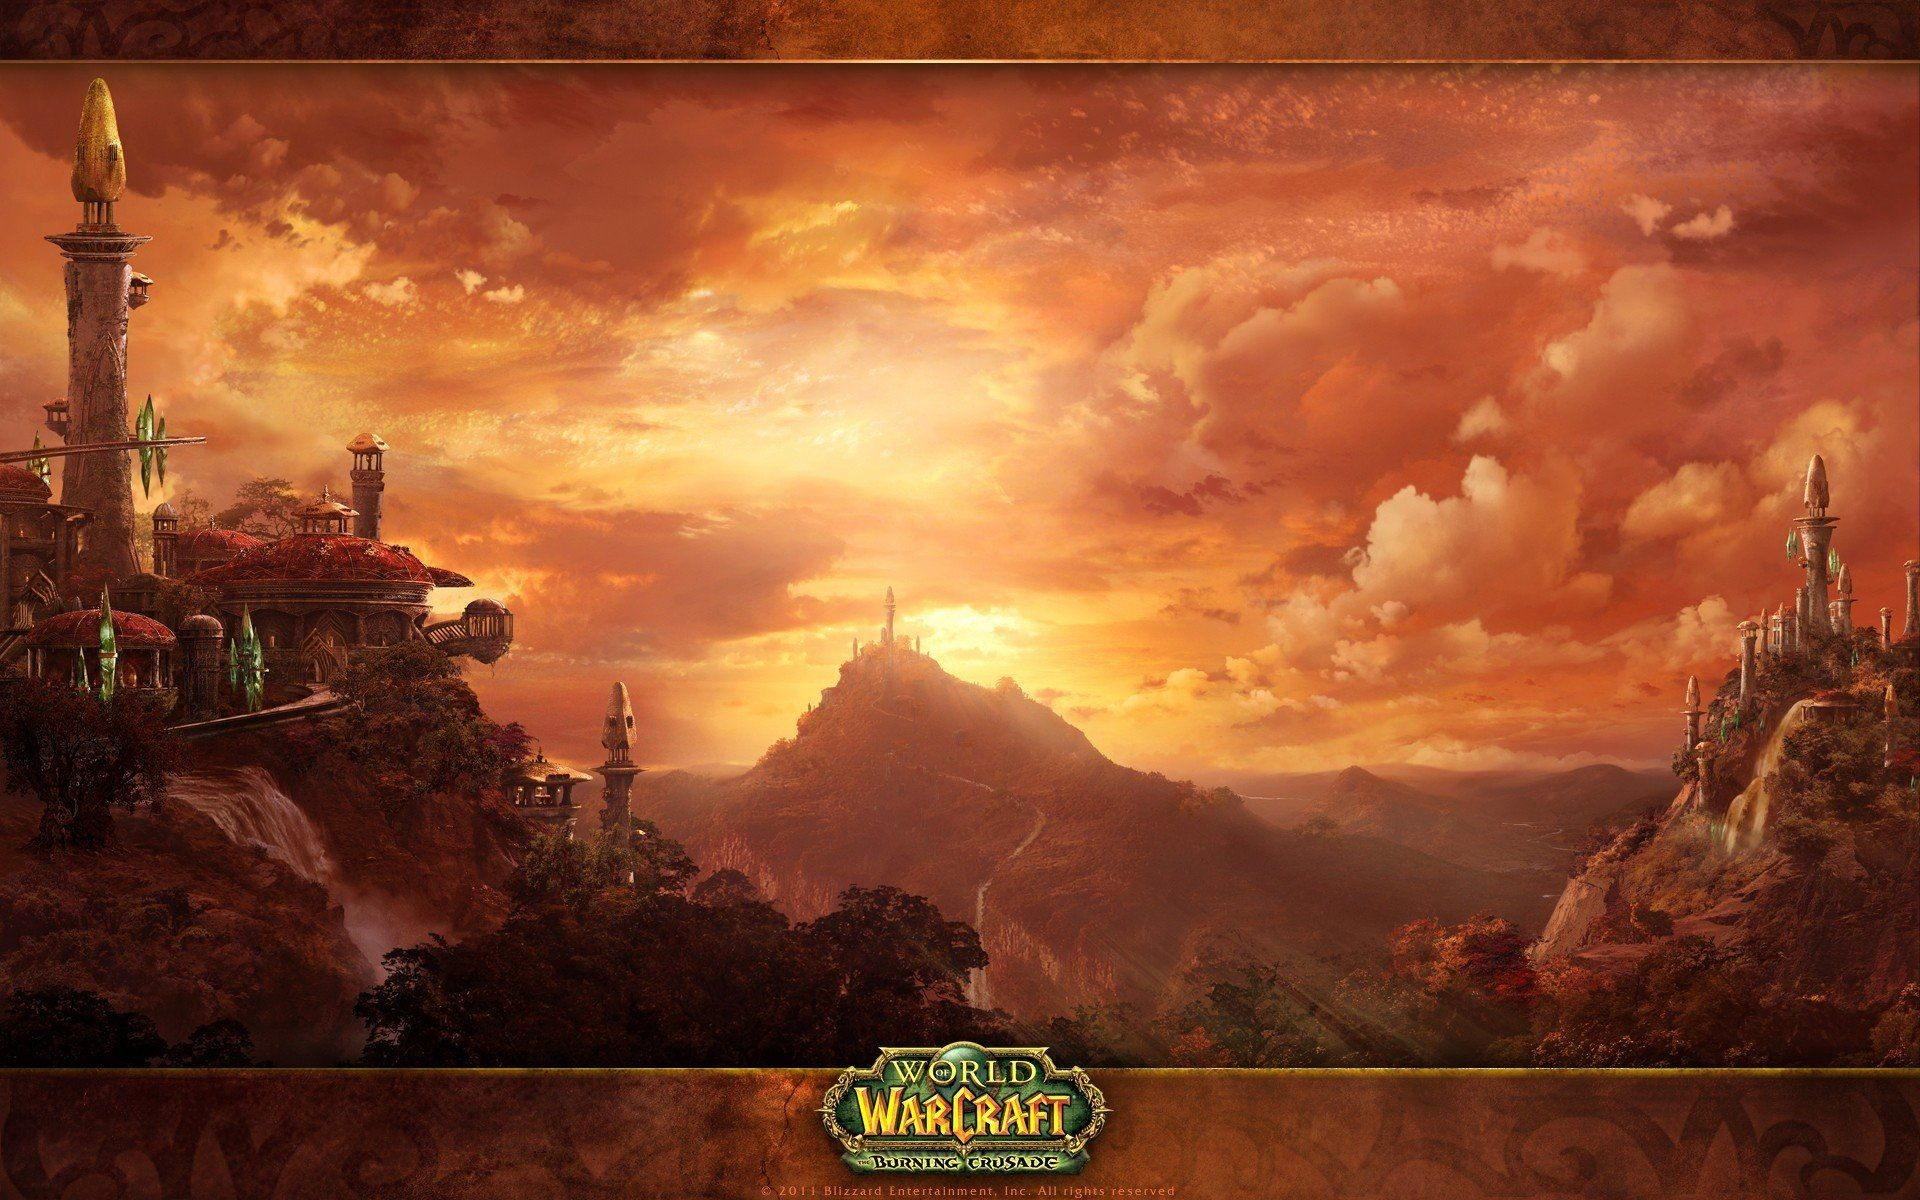 1920x1200 Video games World of Warcraft Blizzard Entertainment burning .